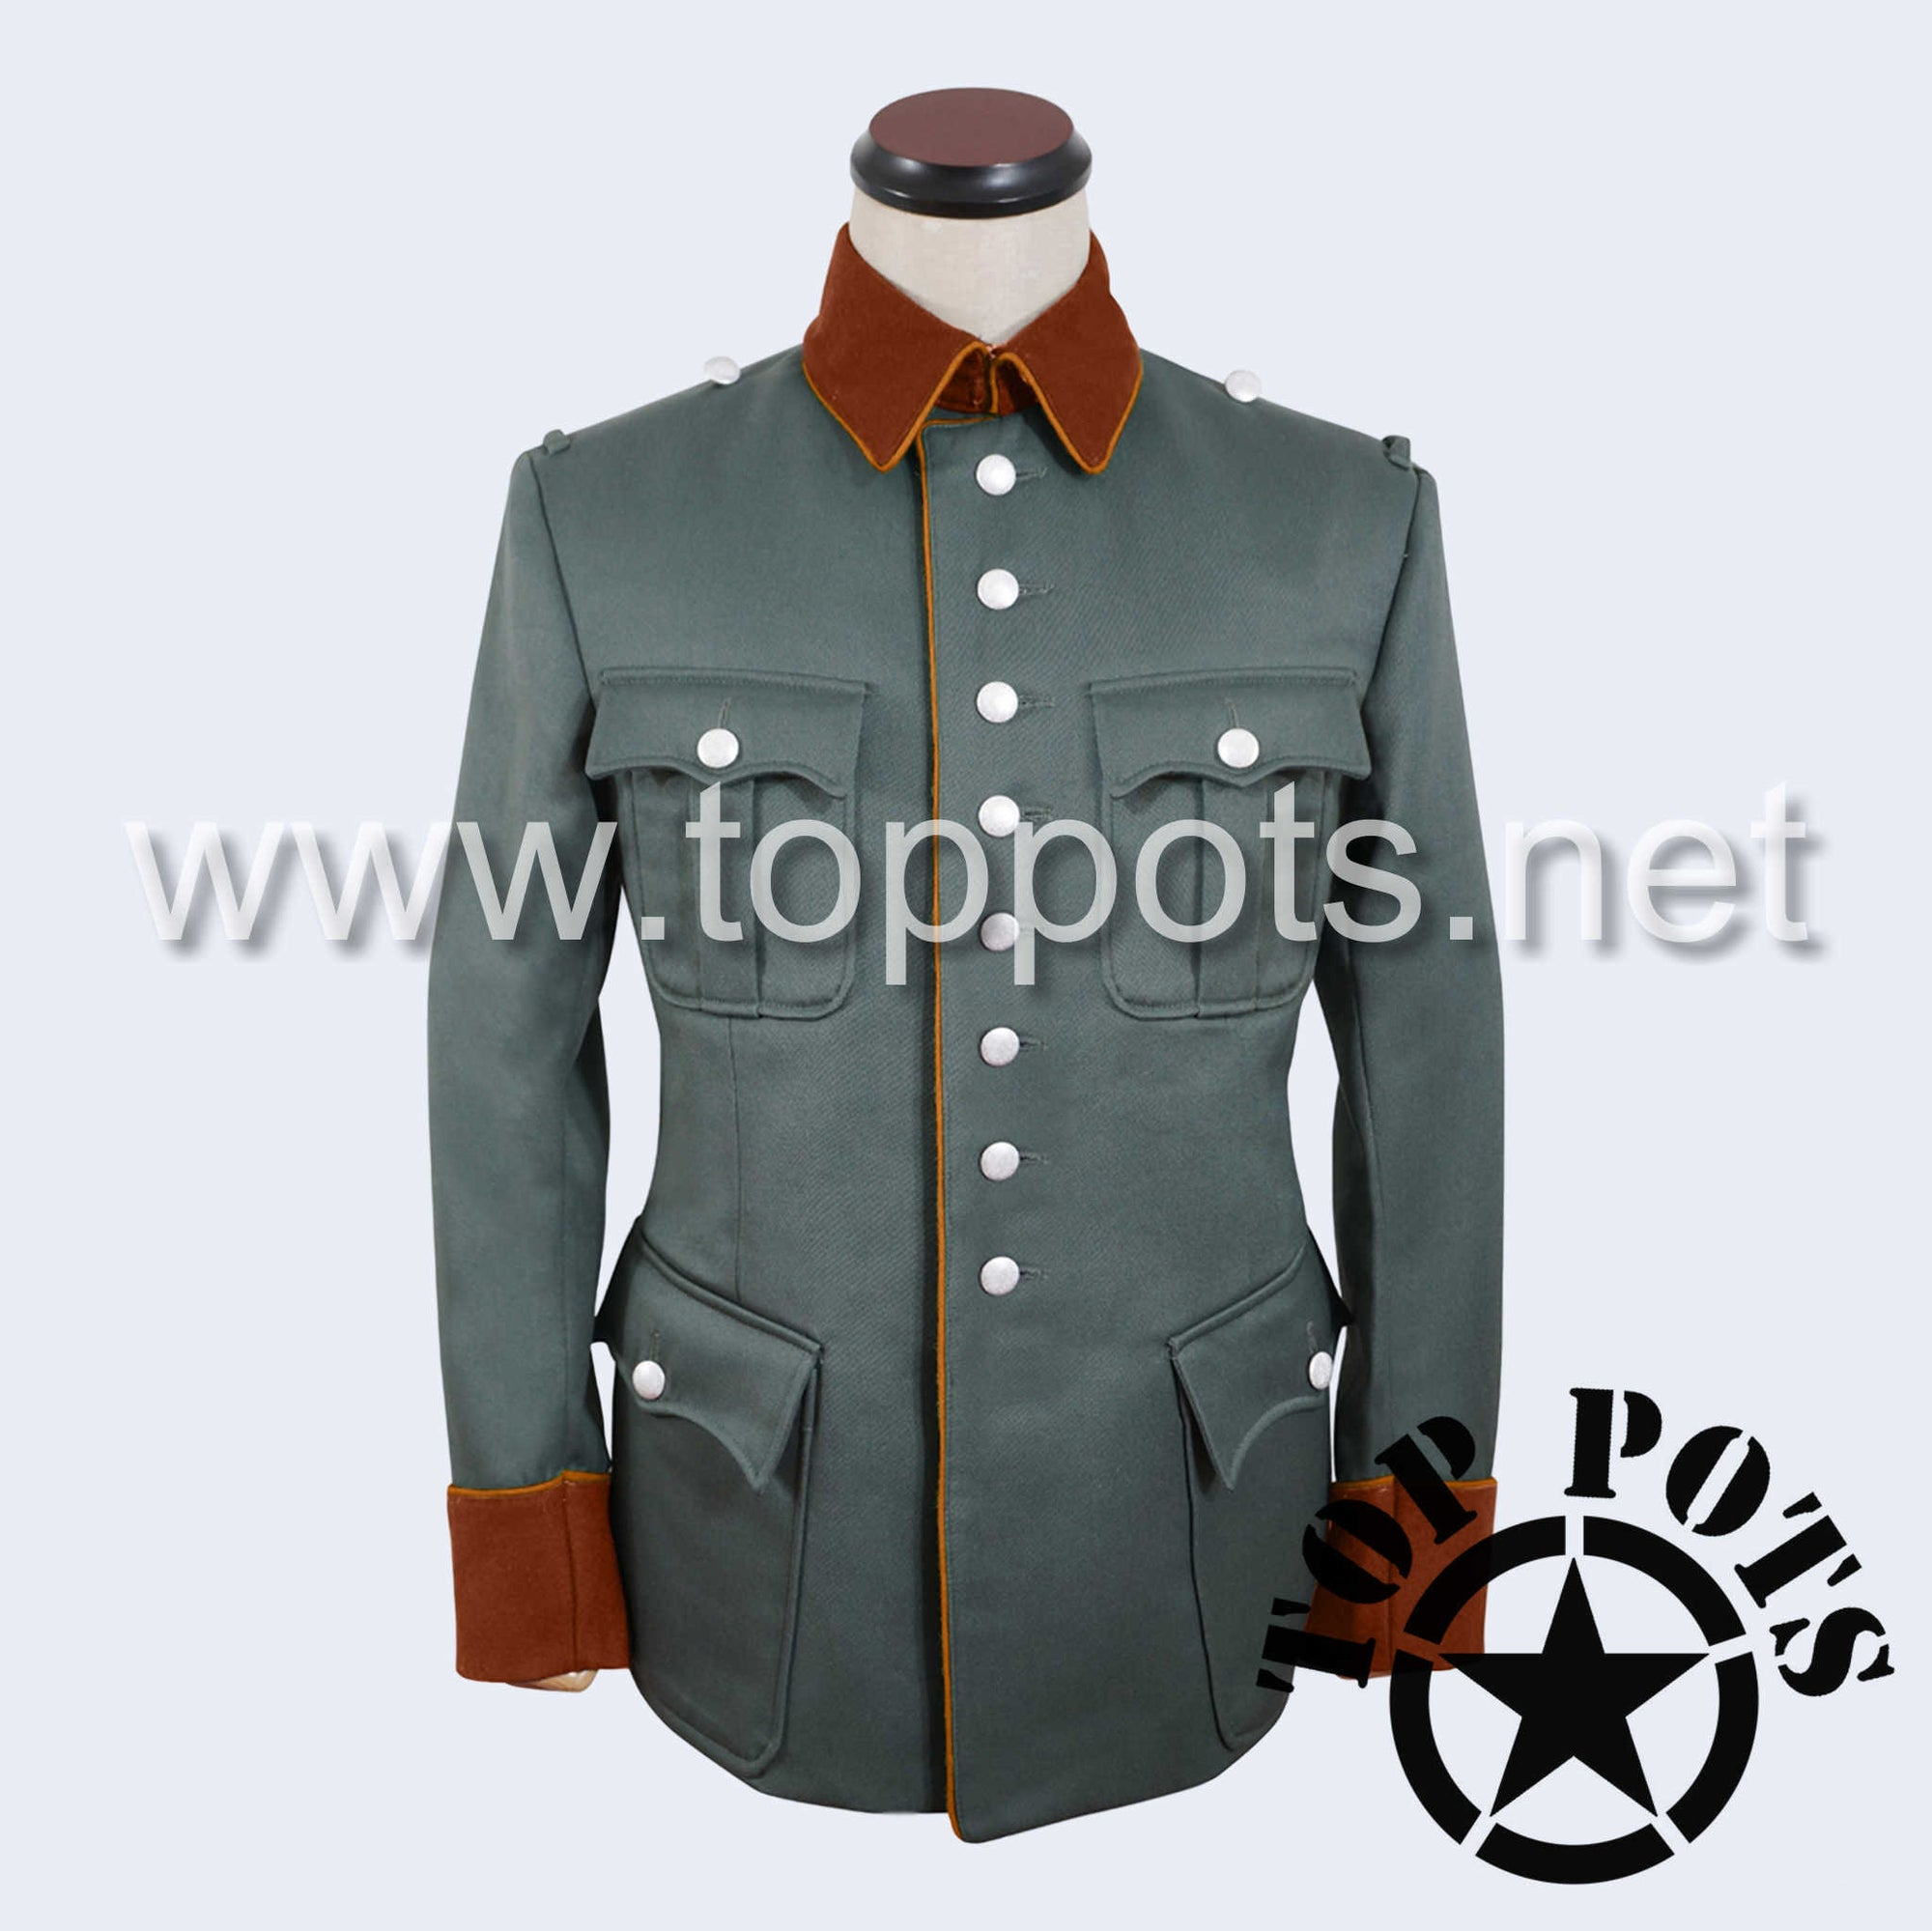 WWII German Army Heer Wehrmacht Officer Uniform Jacket Field Grey Gabardine - Field Police Tunic (8 Buttons)